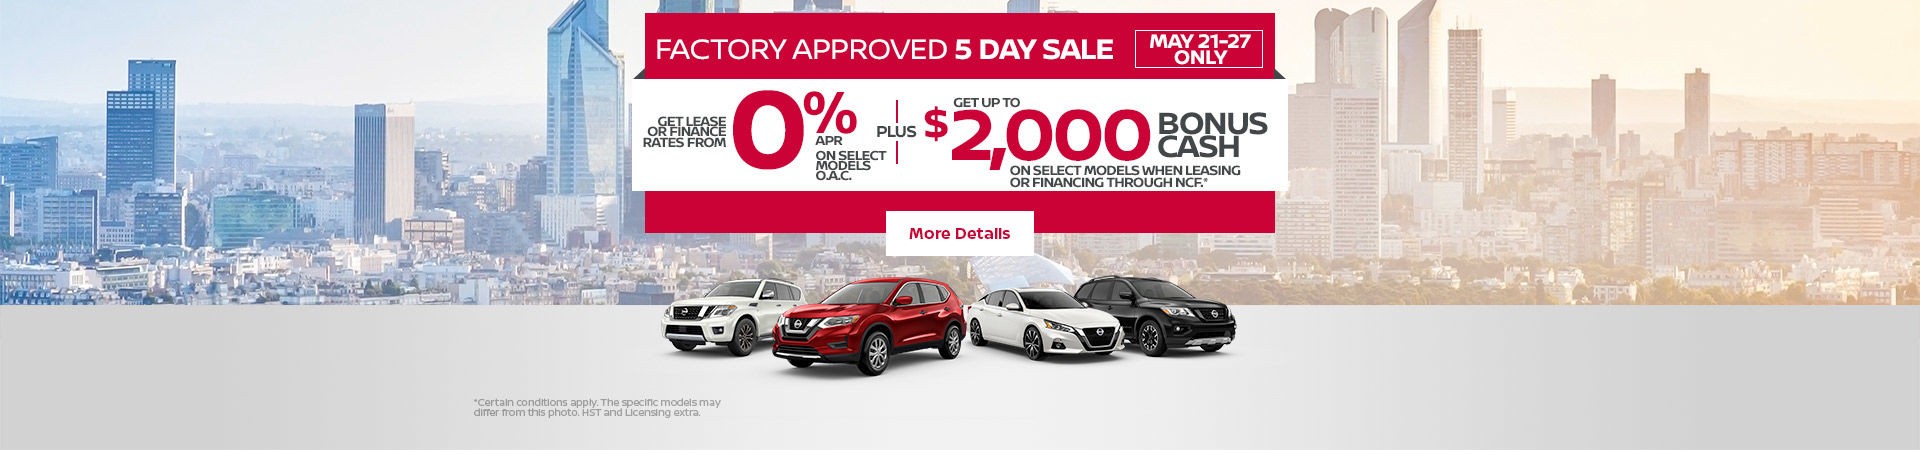 Nissan Event (5 DAYS)